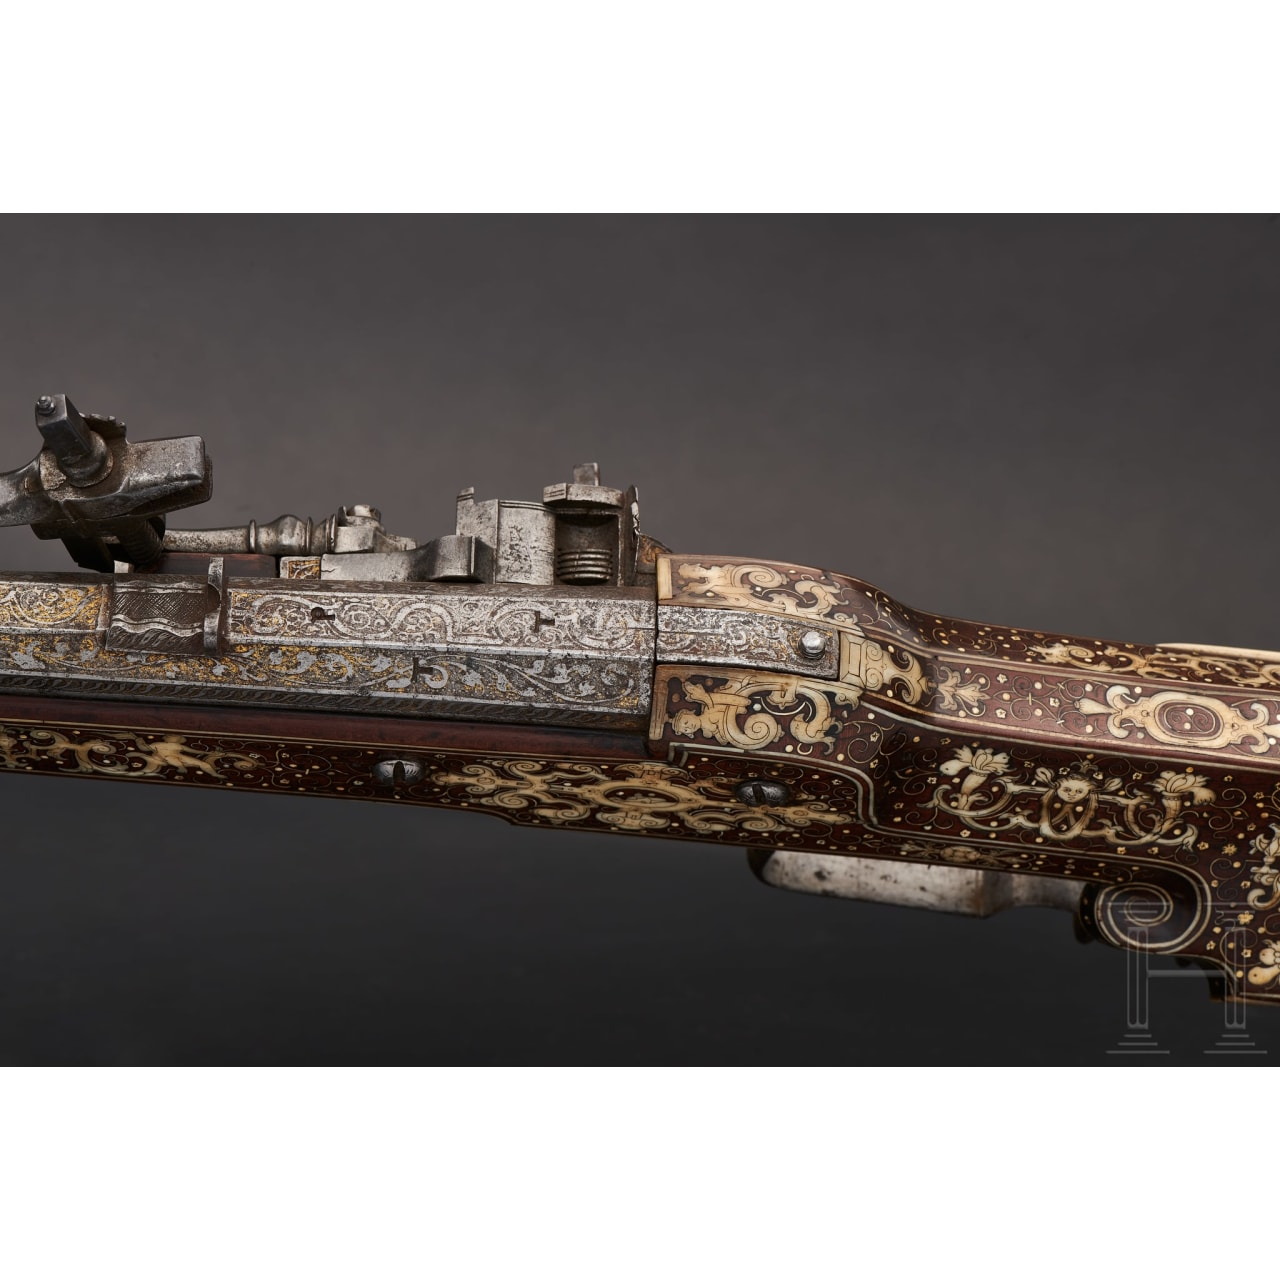 A significant South German wheellock rifle, veneered in bone, with etched lock and barrel, circa 1600